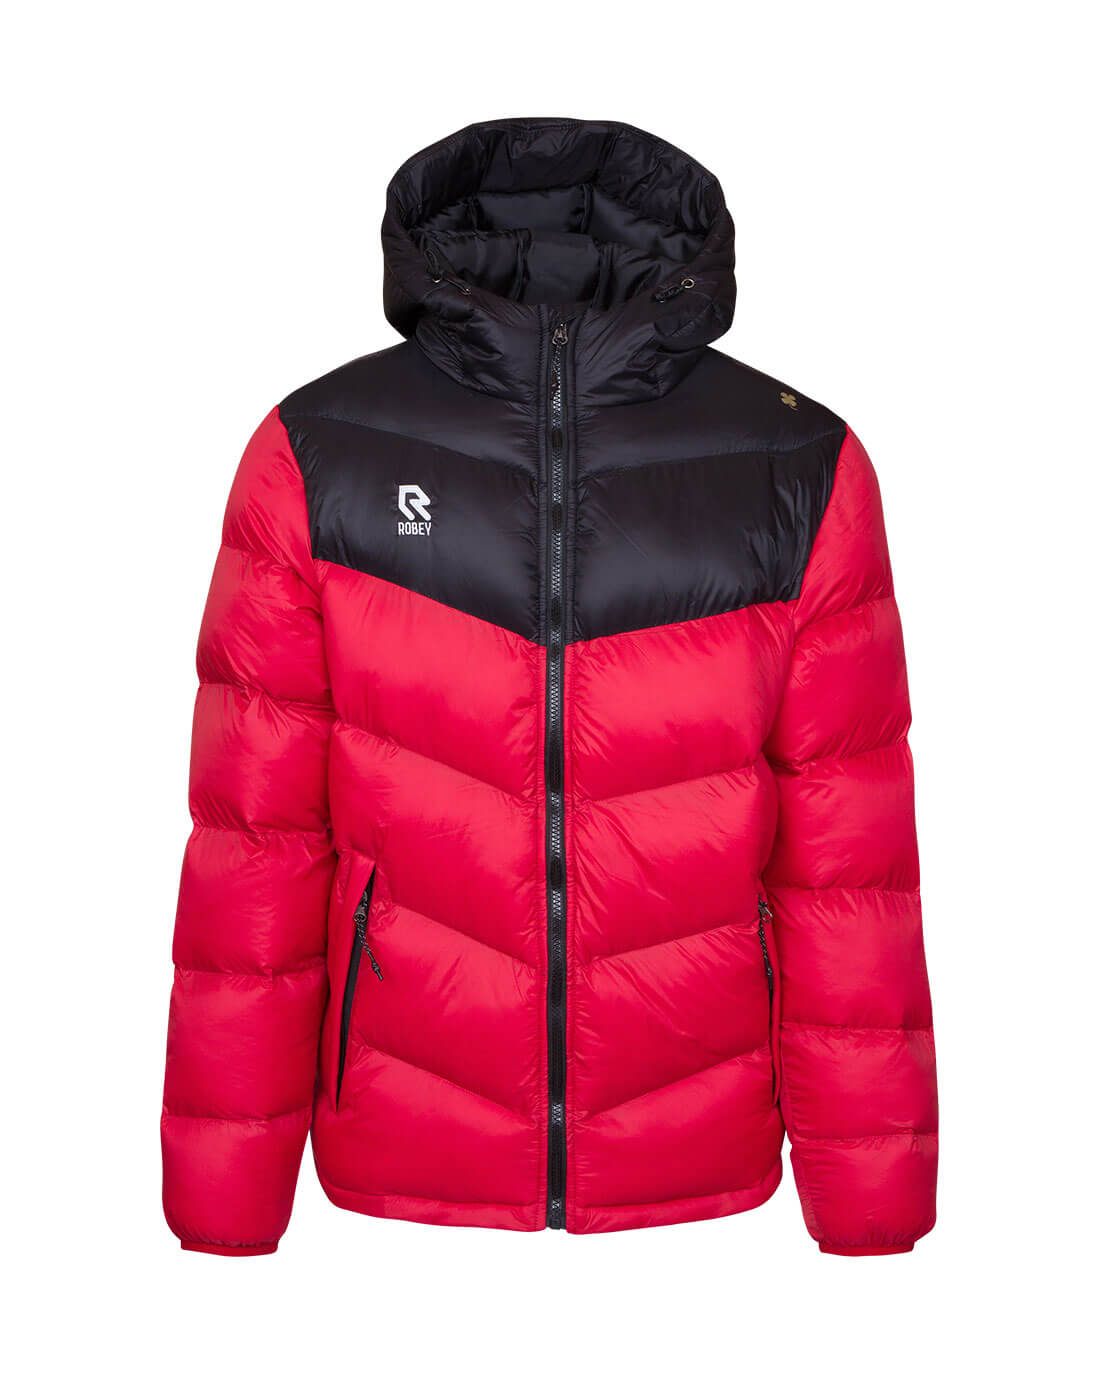 Robey Performance Padded Jacket - Red